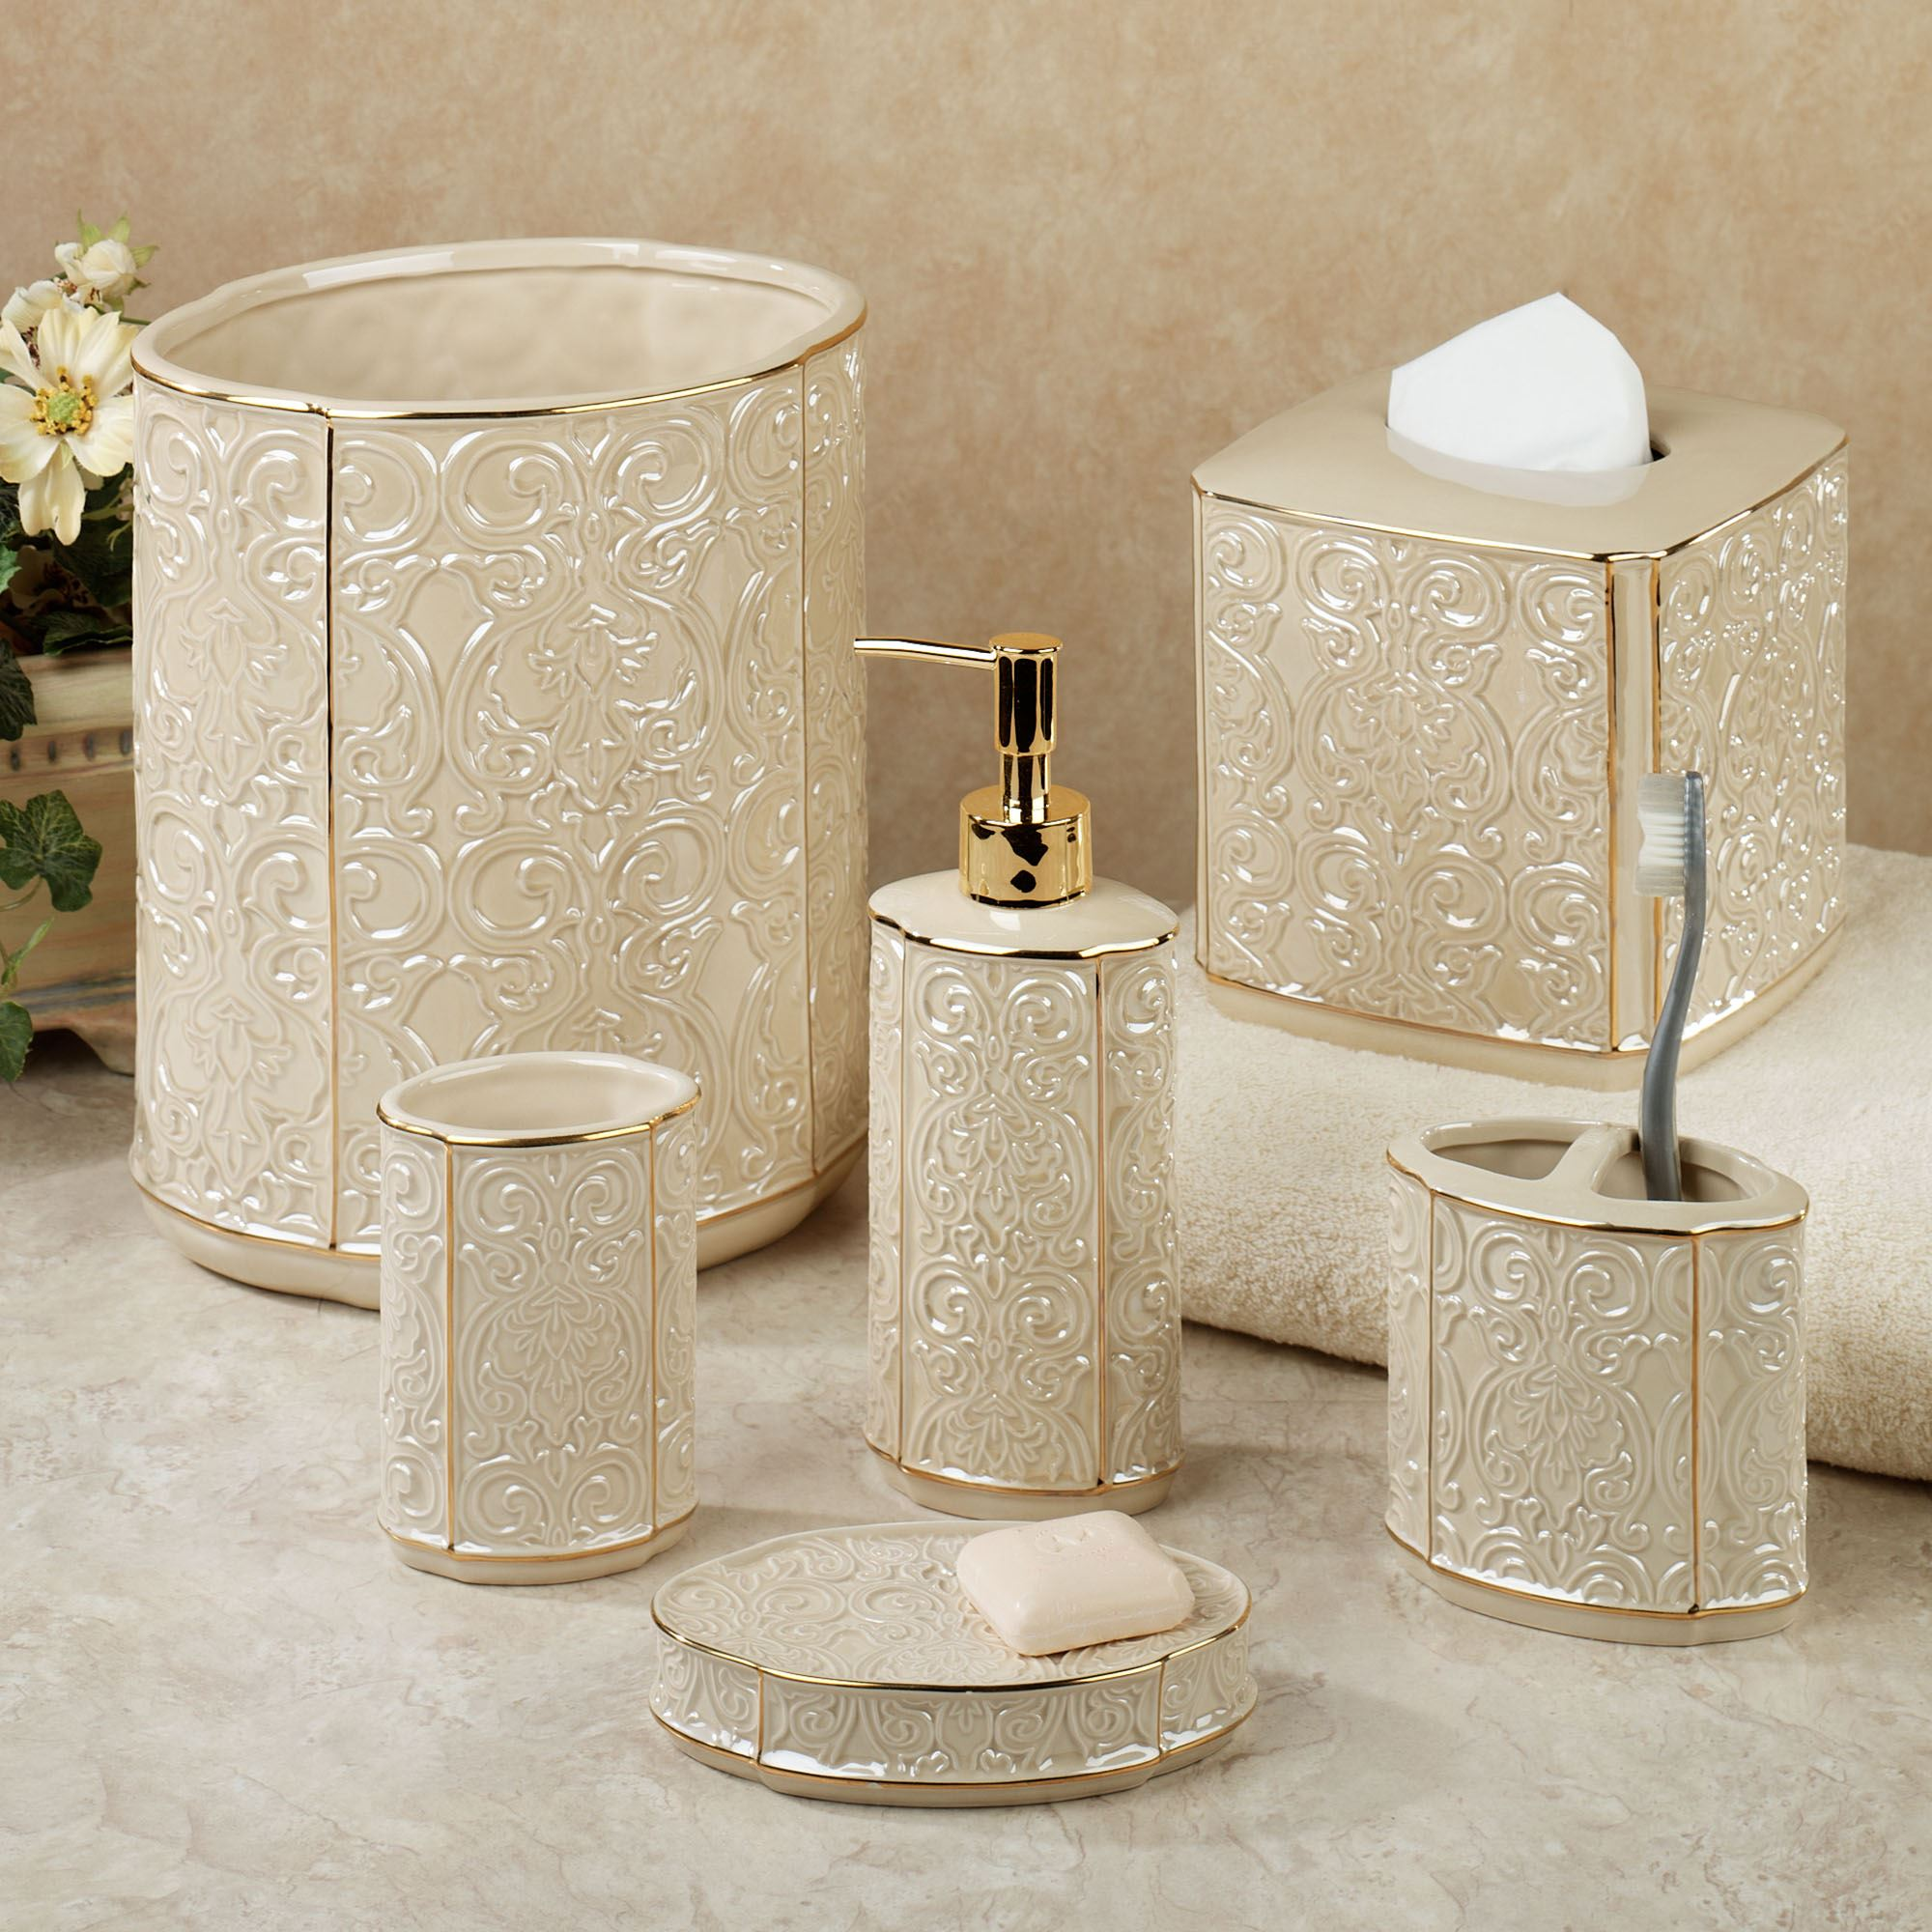 Furla cream damask ceramic bath accessories for Bathroom and accessories